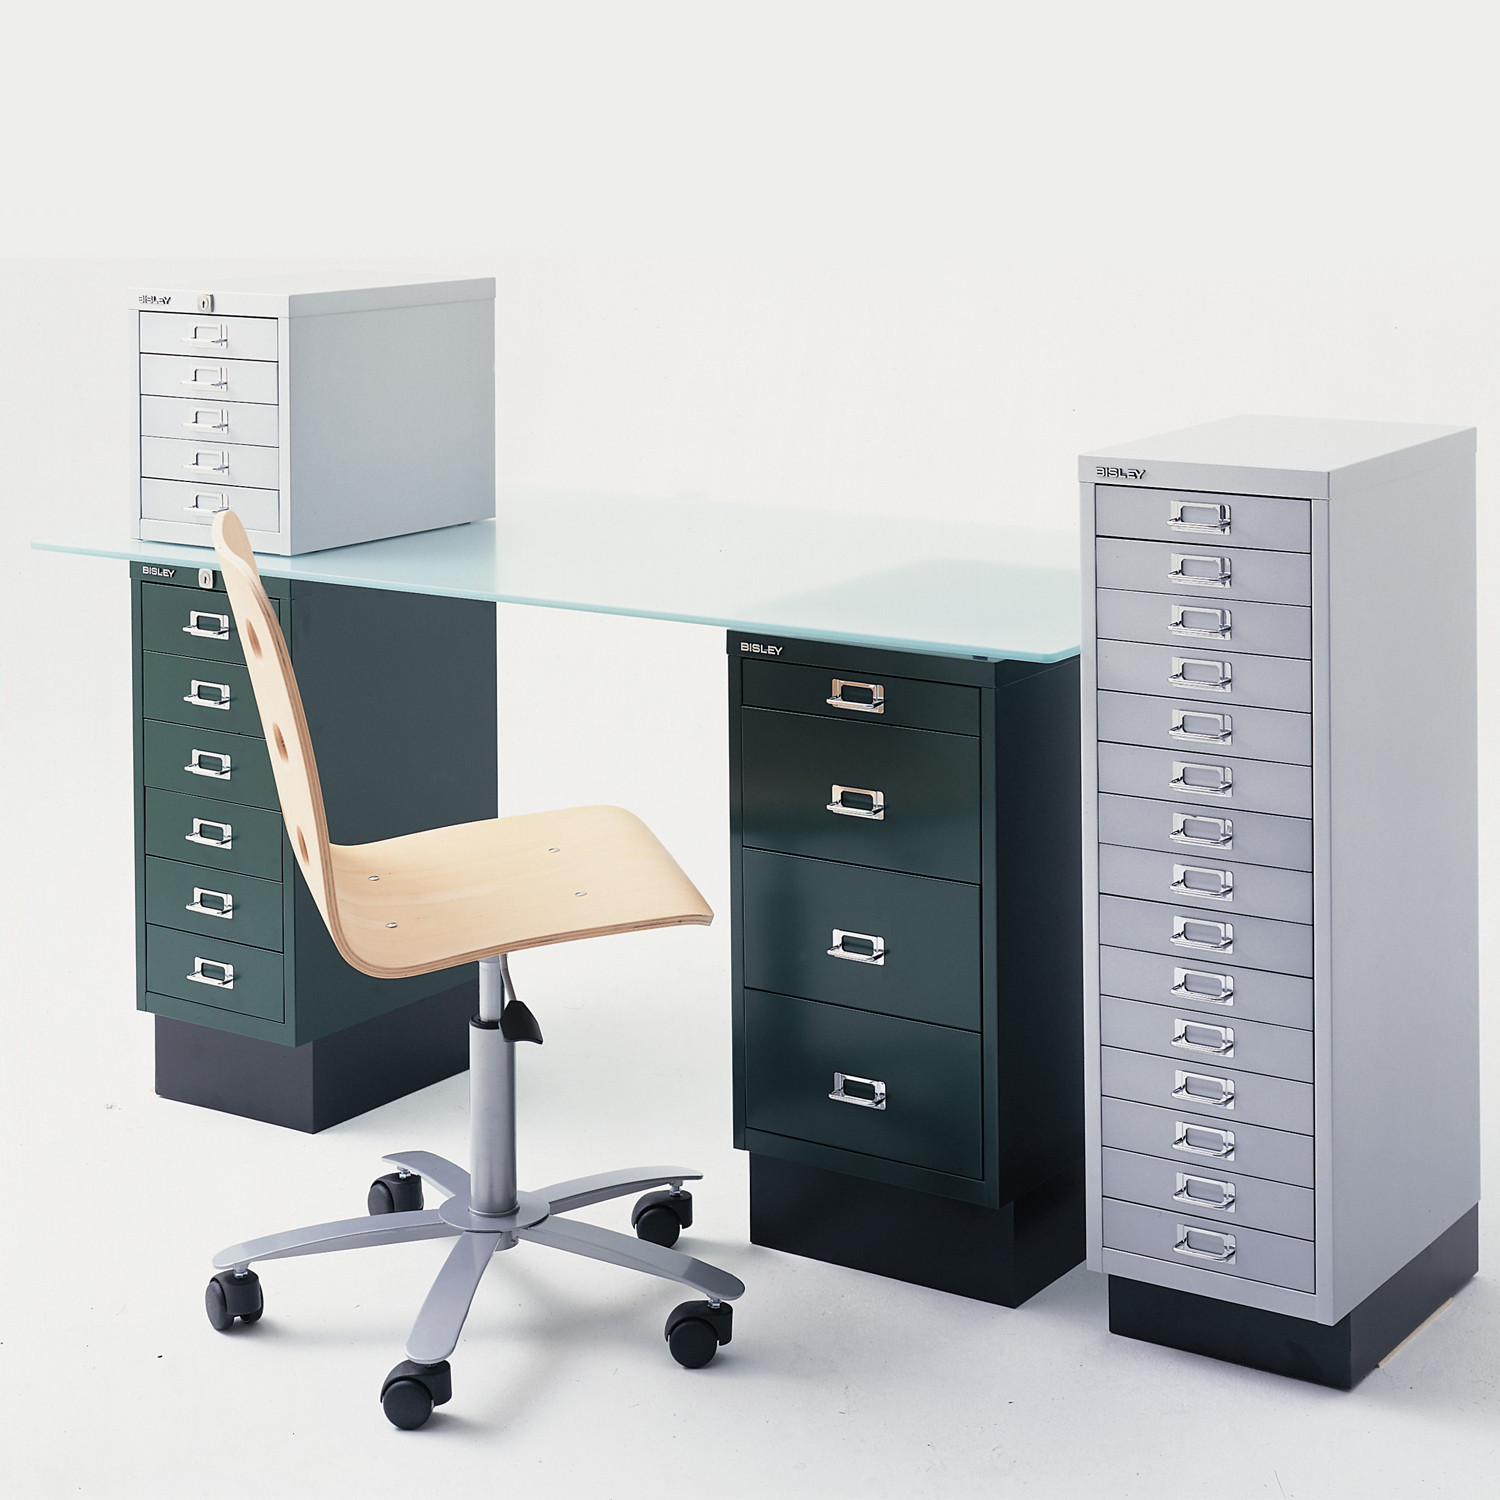 29 Series for top or under desk storage